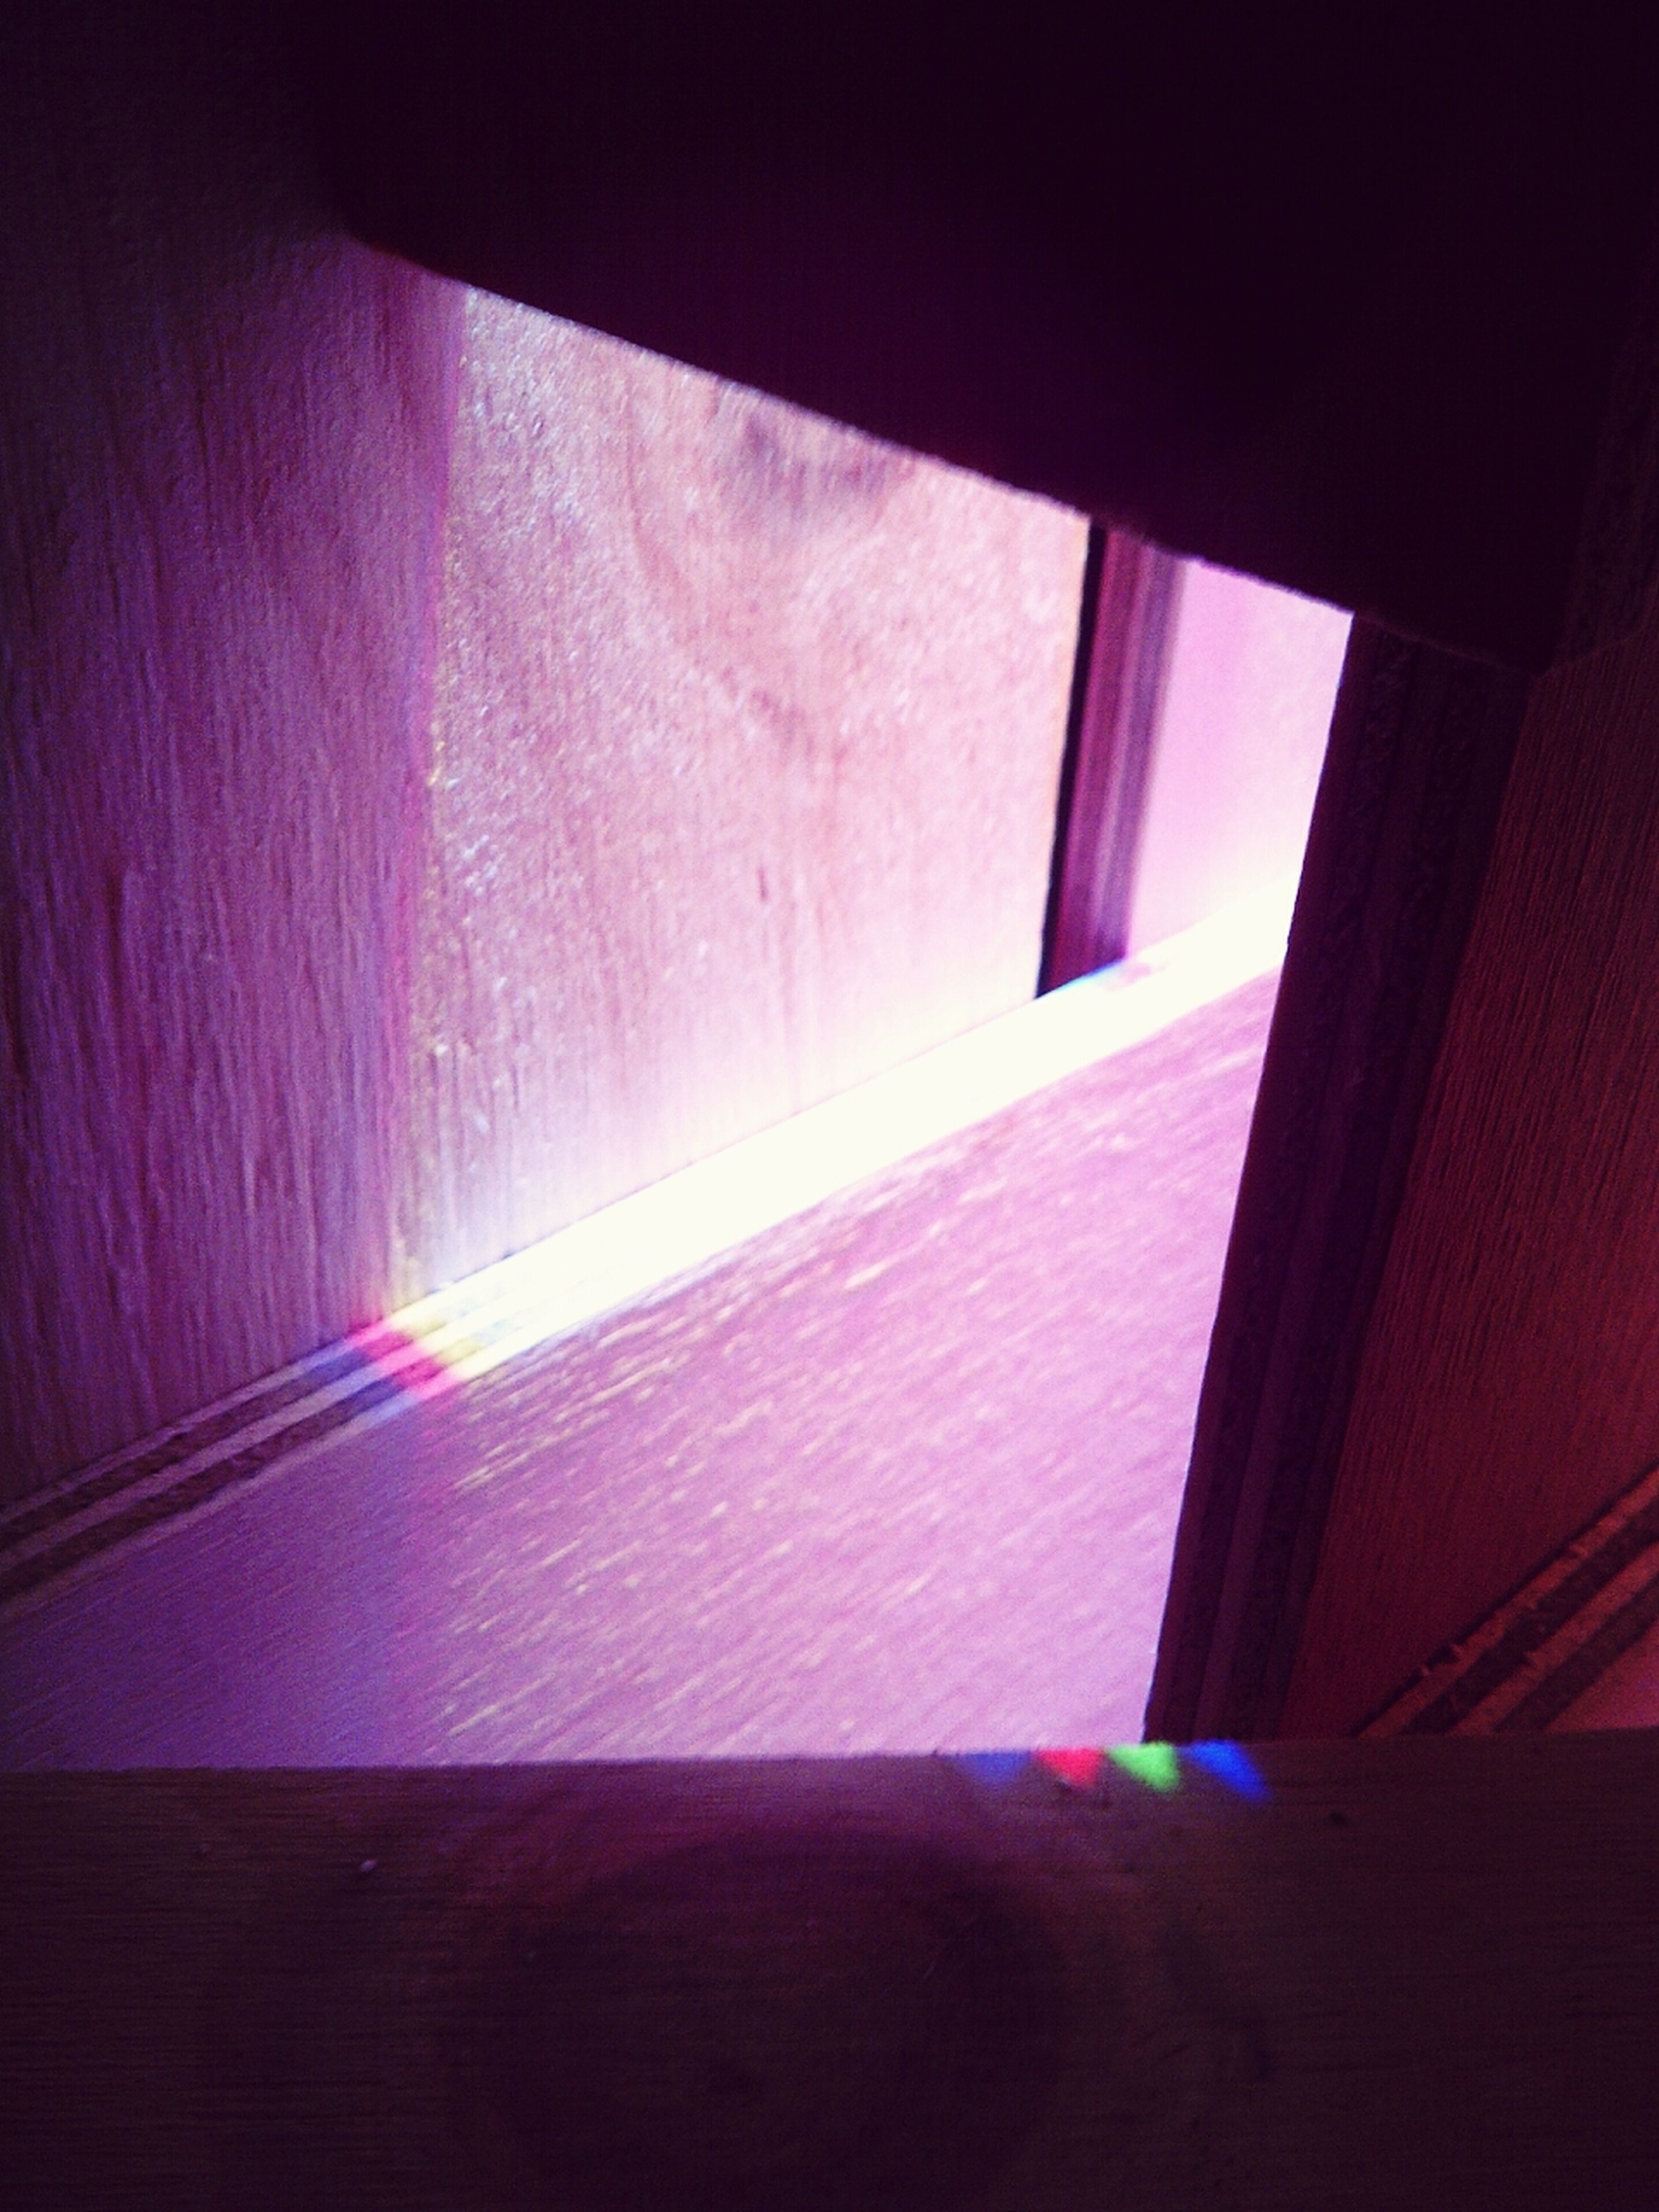 indoors, window, home interior, sunlight, built structure, wall - building feature, curtain, architecture, illuminated, house, no people, dark, wall, glass - material, light - natural phenomenon, copy space, absence, shadow, red, transparent